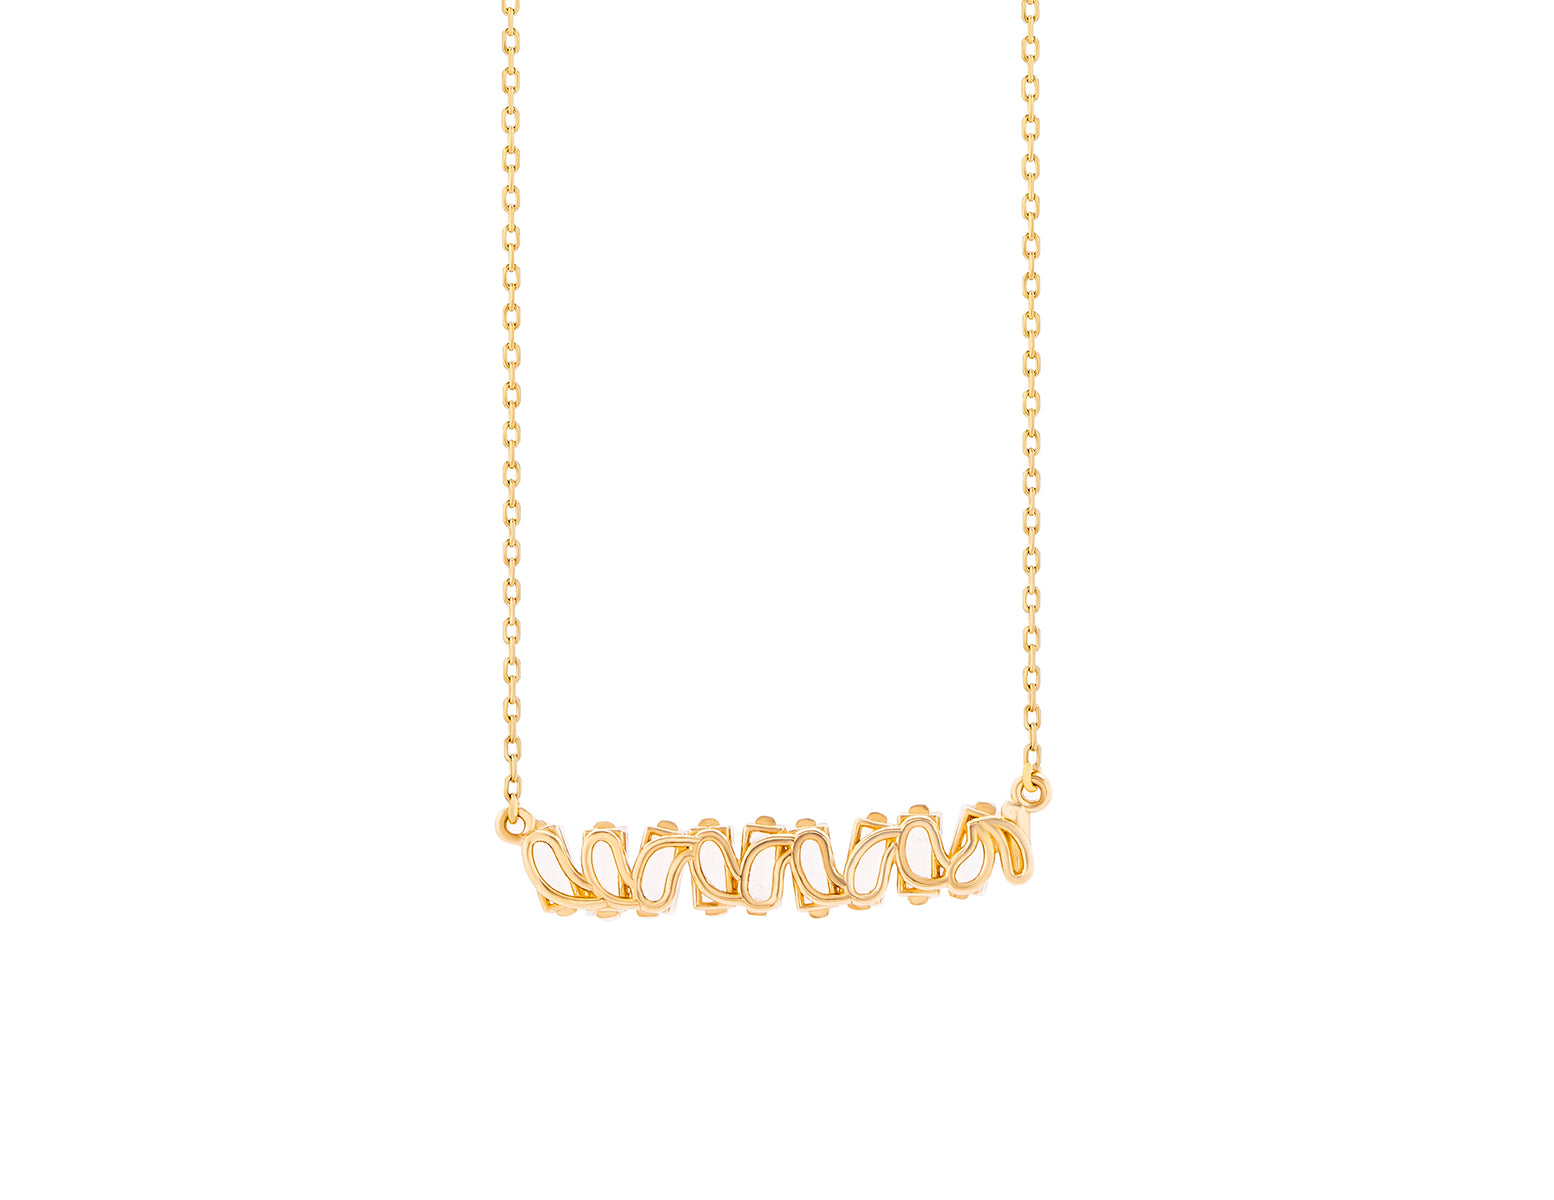 14K YELLOW GOLD AMALFI BAGUETTE BAR PENDANT